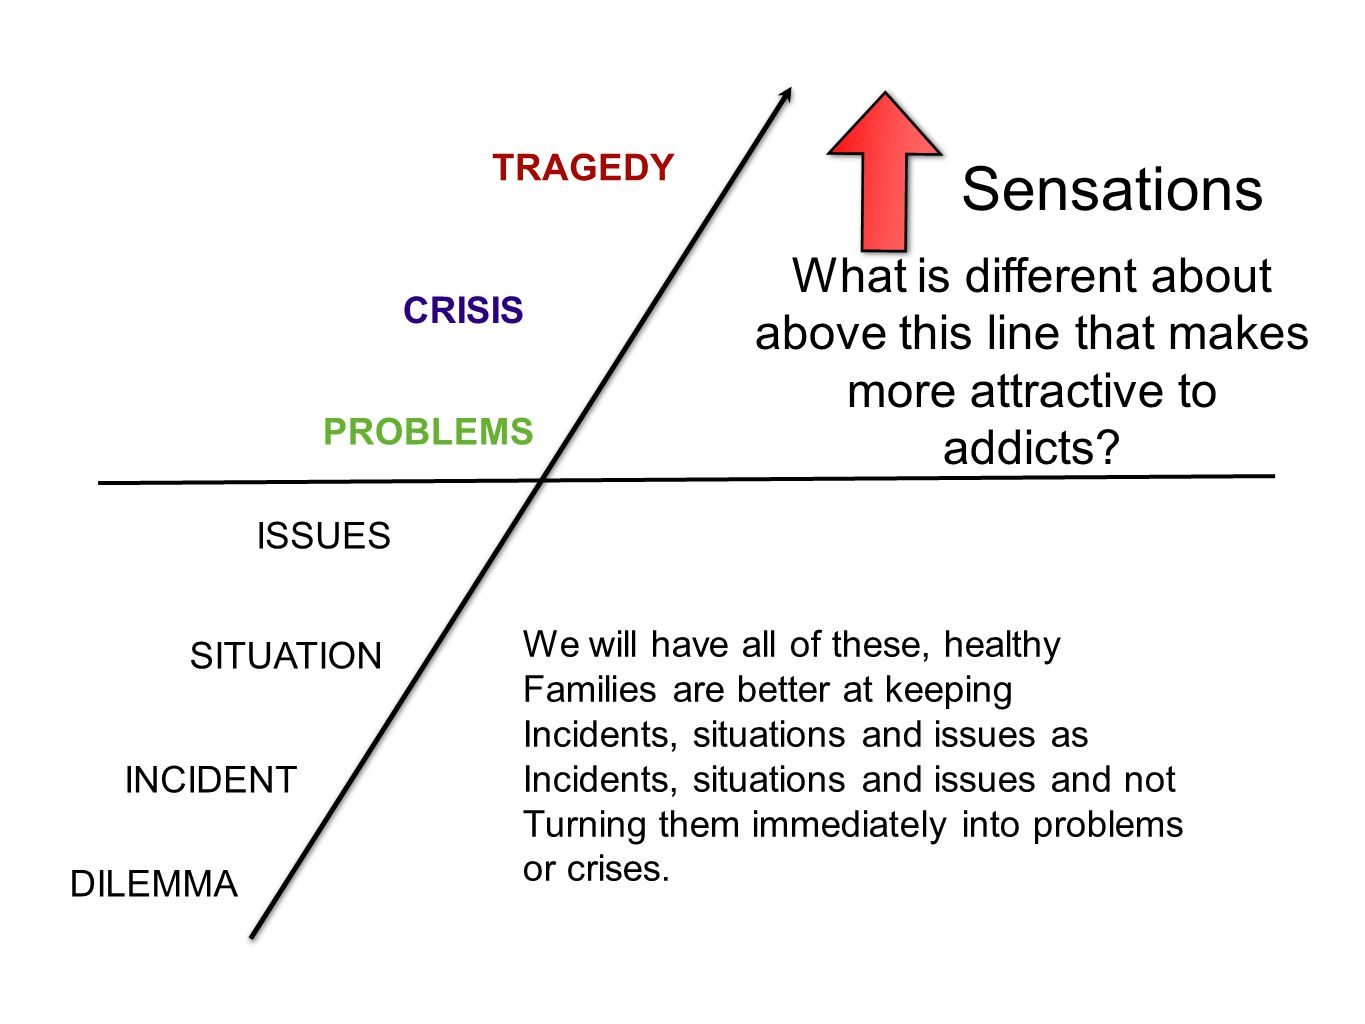 TRAGEDY Sensations. What is different about above this line that makes more attractive to addicts